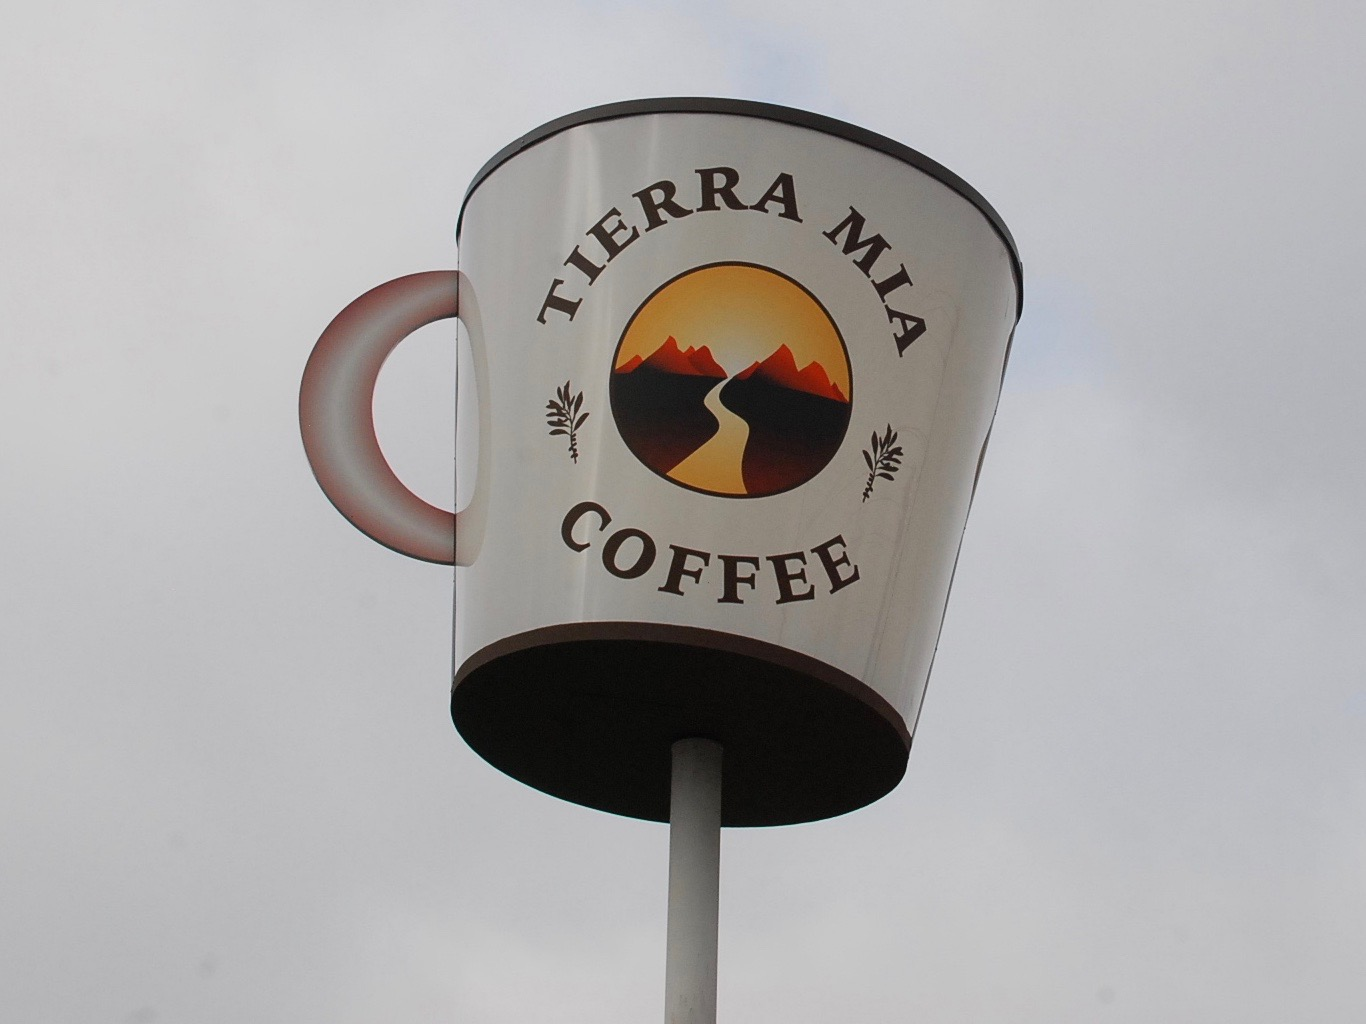 Tierra Mia Coffee: Taking Specialty Beans for a Latin Spin